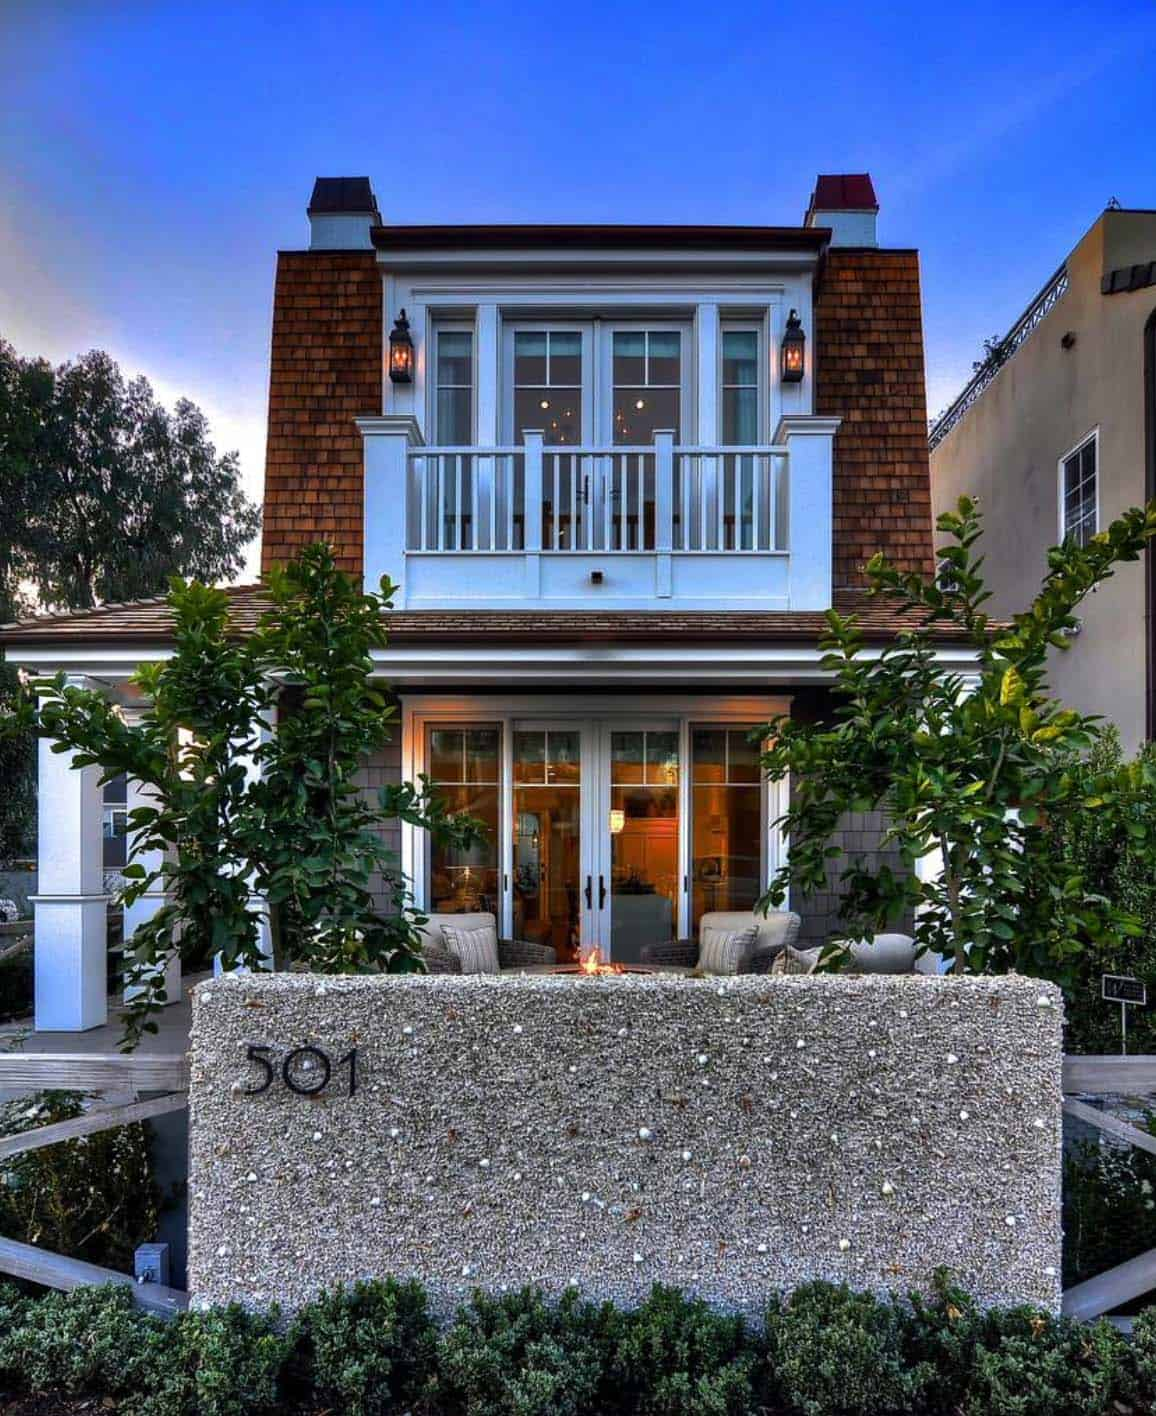 coastal-home-traditional-styling-exterior